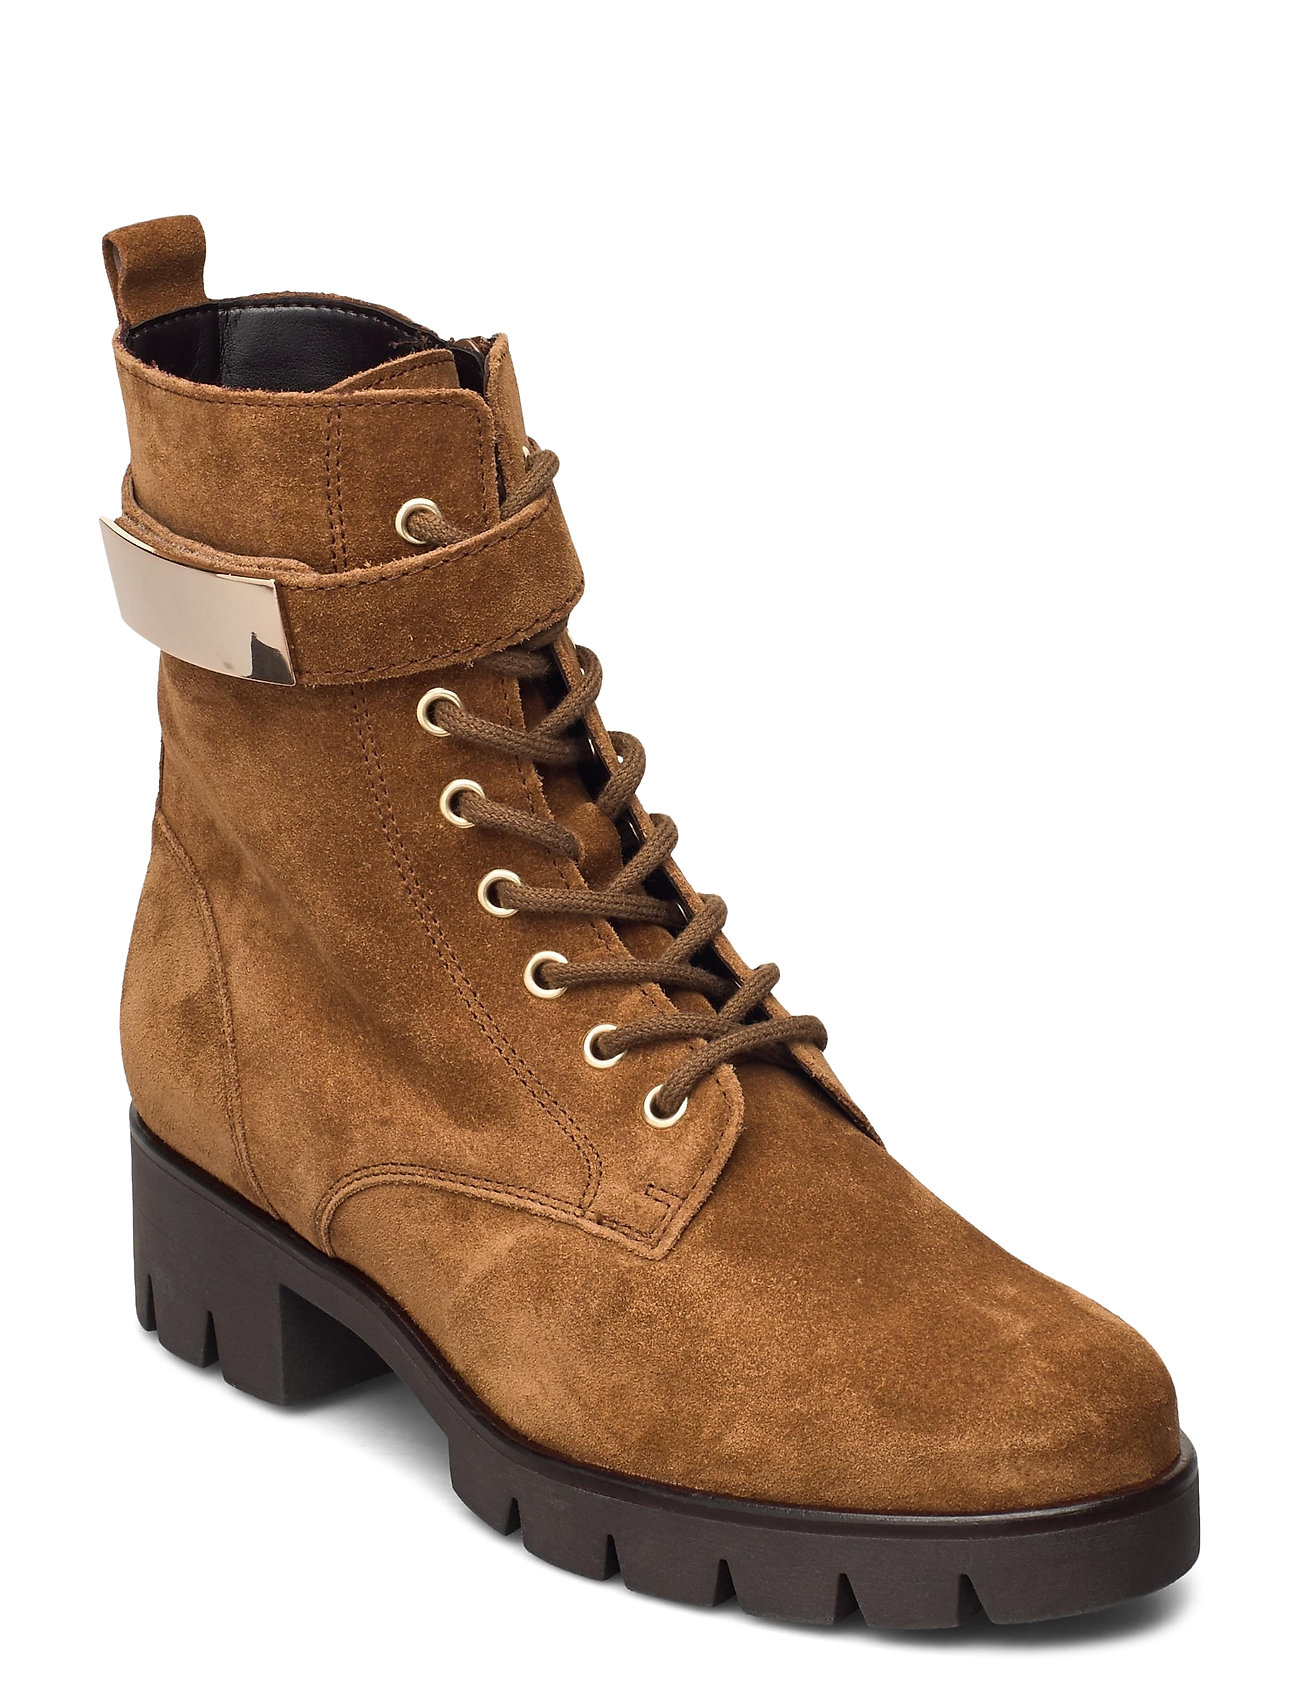 Image of Ankle Boot Shoes Boots Ankle Boots Ankle Boot - Flat Brun Gabor (3462700061)